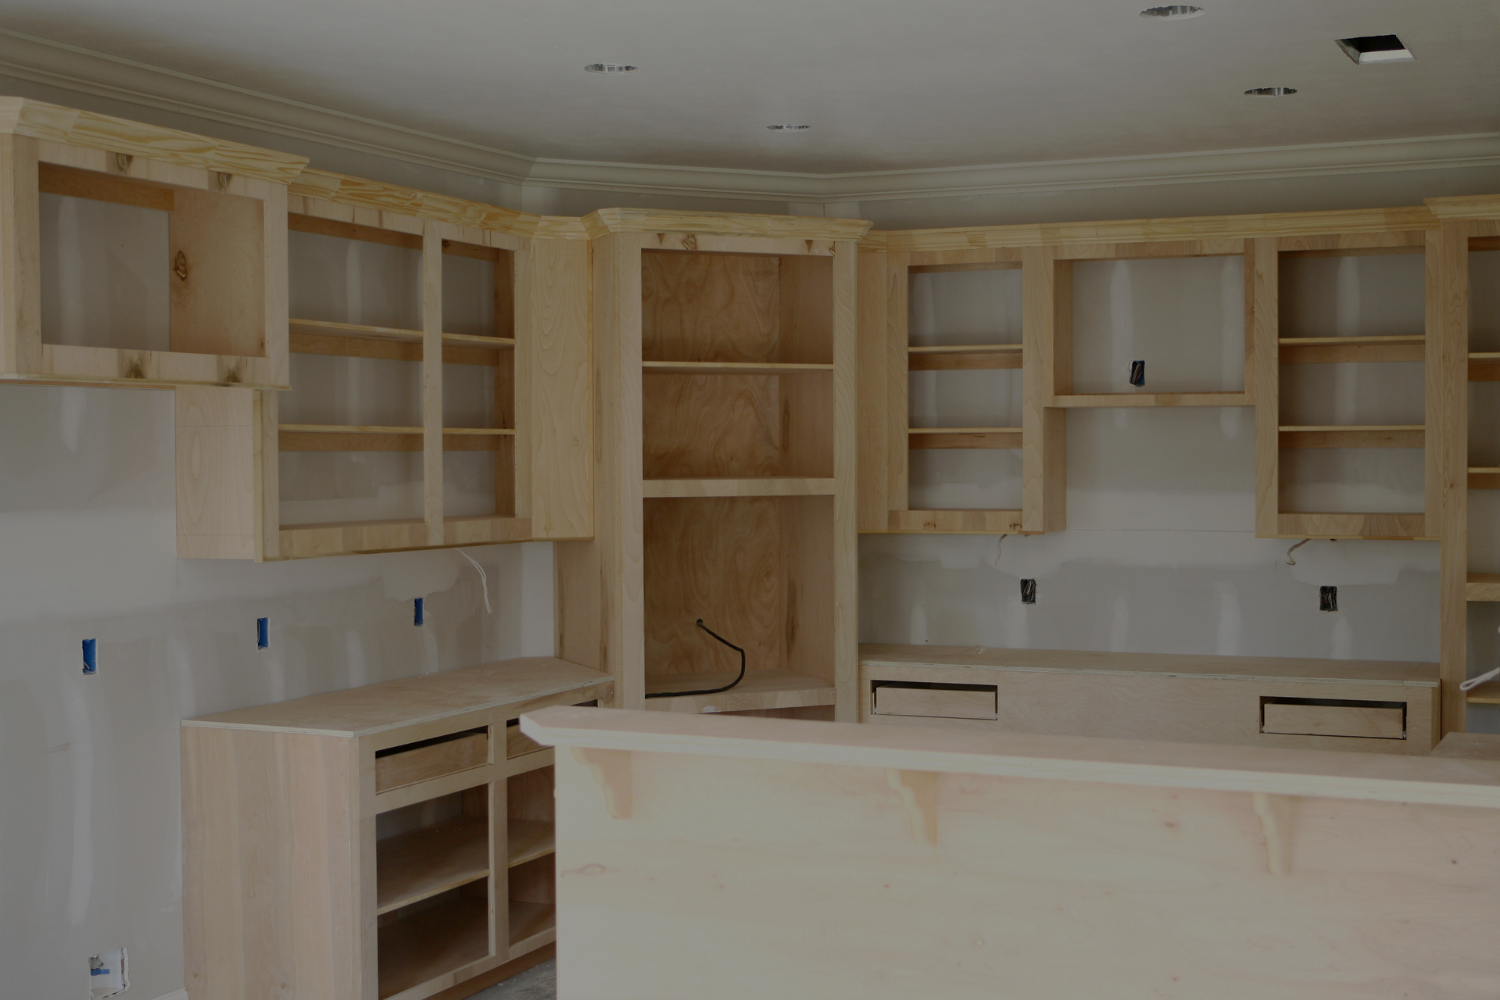 What Material Should I Choose for My Cabinet Doors